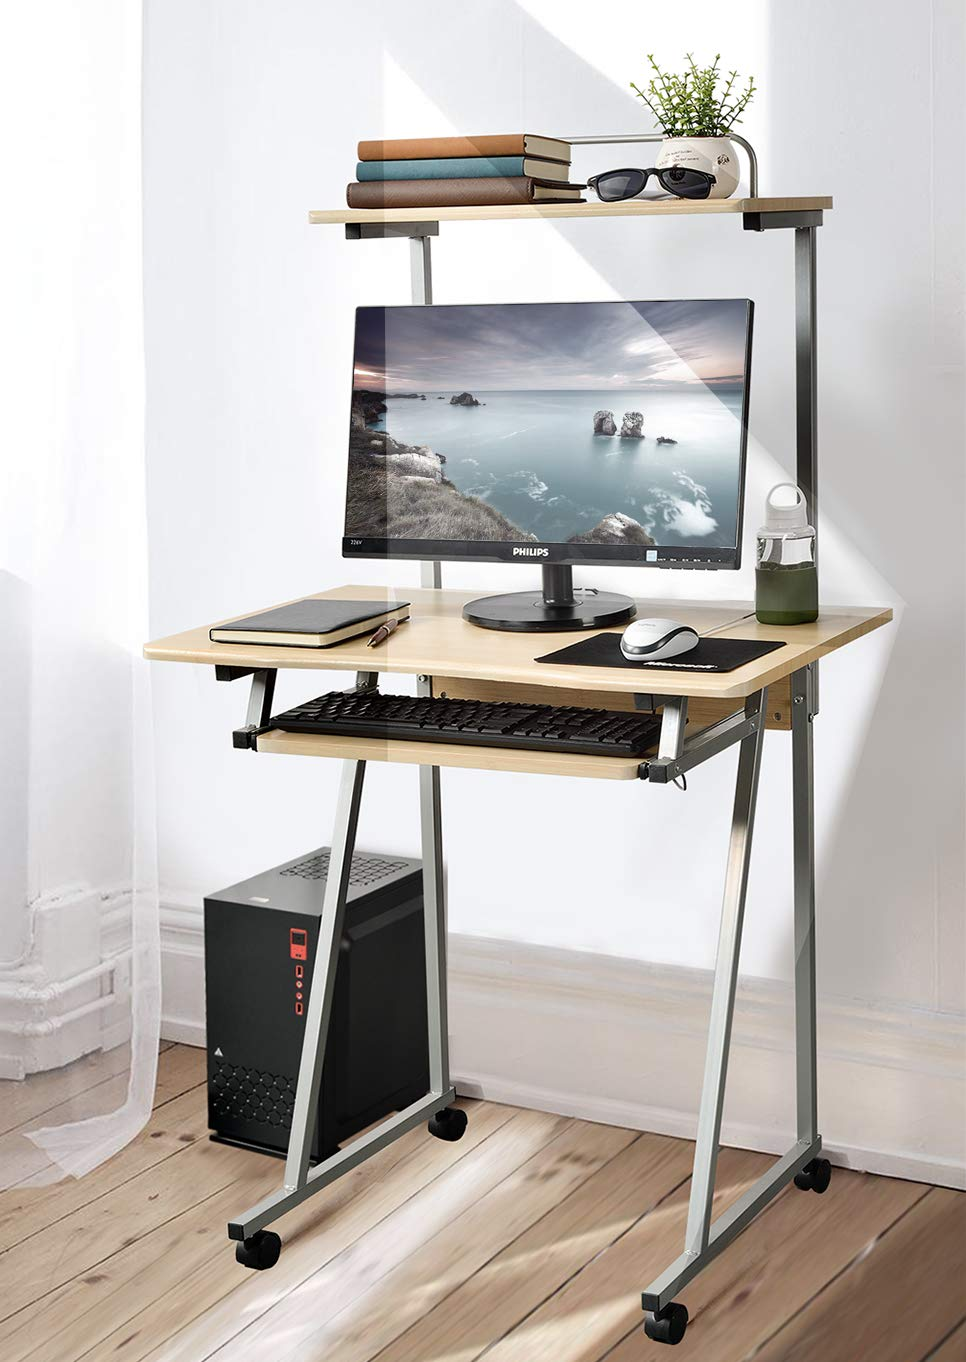 Aingoo Mobile Computer Desk Small Rolling Workstation Laptop Stand With Printer Shelf and Keyboard Space Beige NEUWIED